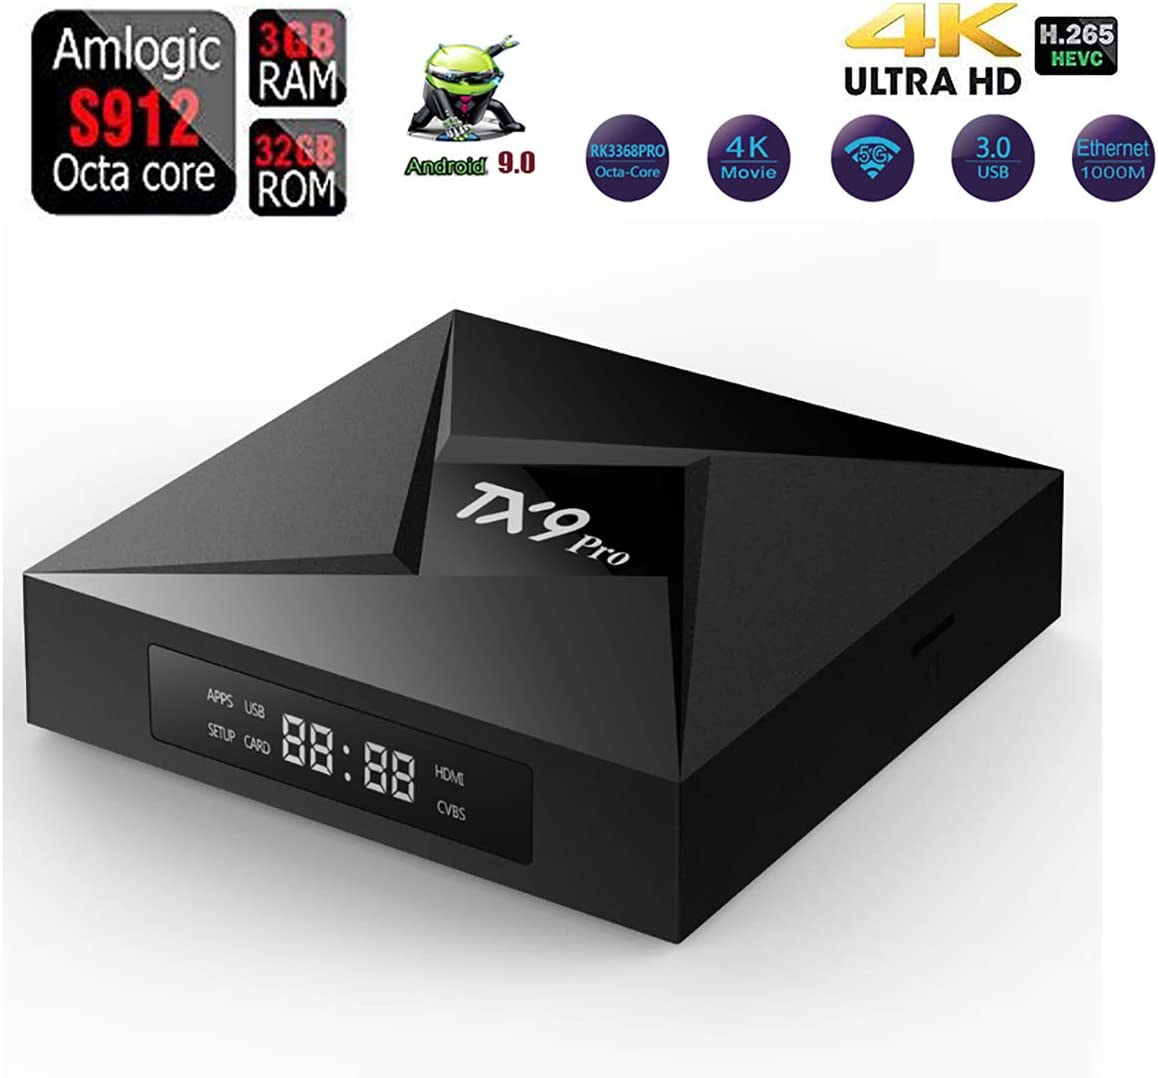 WXJHA TX9 Pro TV Box Octa-Core de 32 GB / 3GB DDR3 Bluetooth Android 7.1 Amlogic S9121080p 4K 3D de 2,4 GHz / 5.0 GHz de Doble WiFi Google Play Smart TV Box: Amazon.es: Hogar